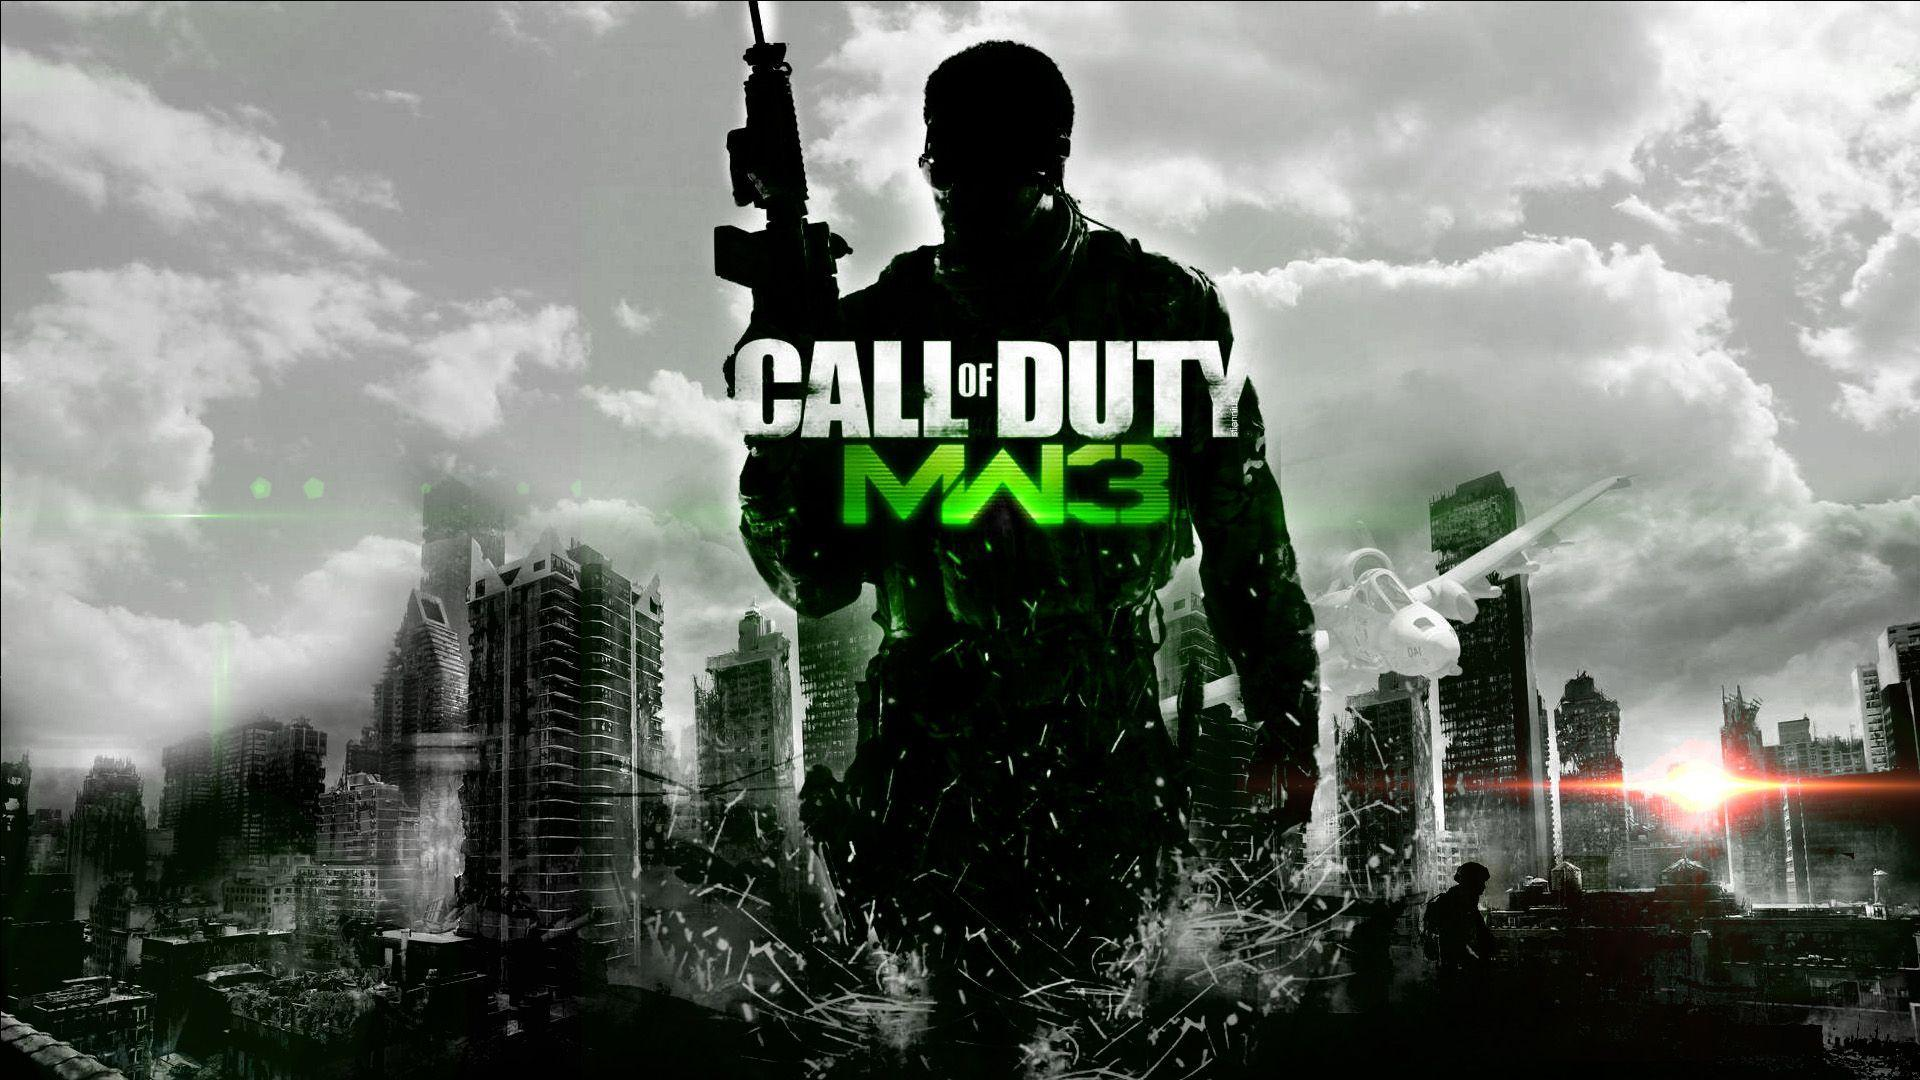 call of duty ghosts logo wallpapers » Game Wallpapers Collections